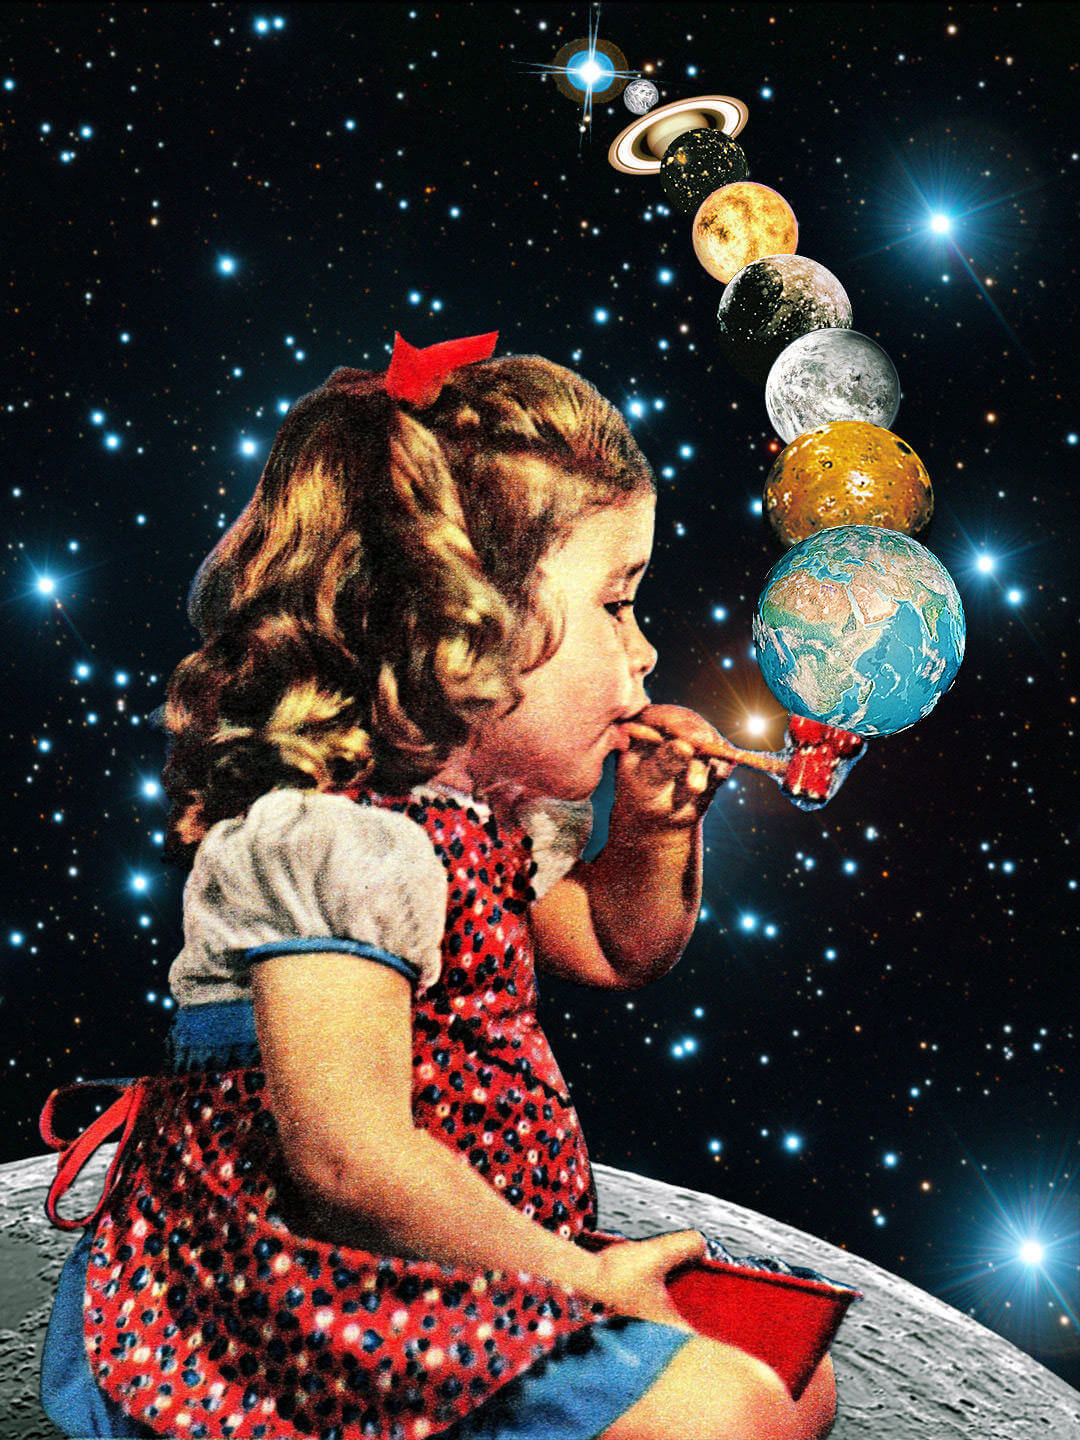 Surreal Collages by Eugenia Loli